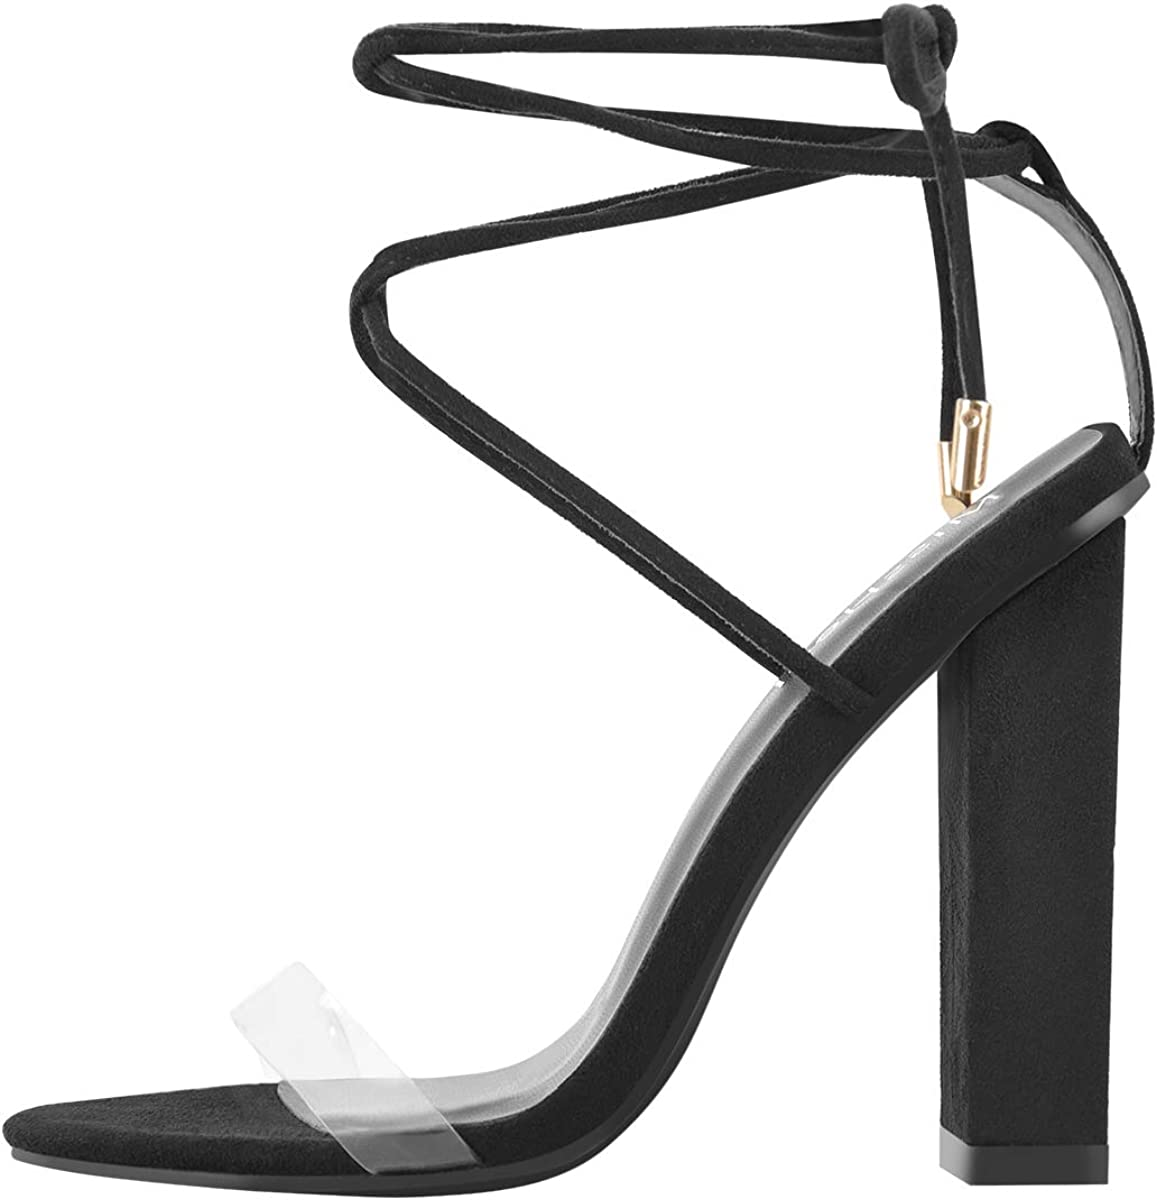 MissHeel Chunky Lace-up Heels Sandals Limited Trust price Black